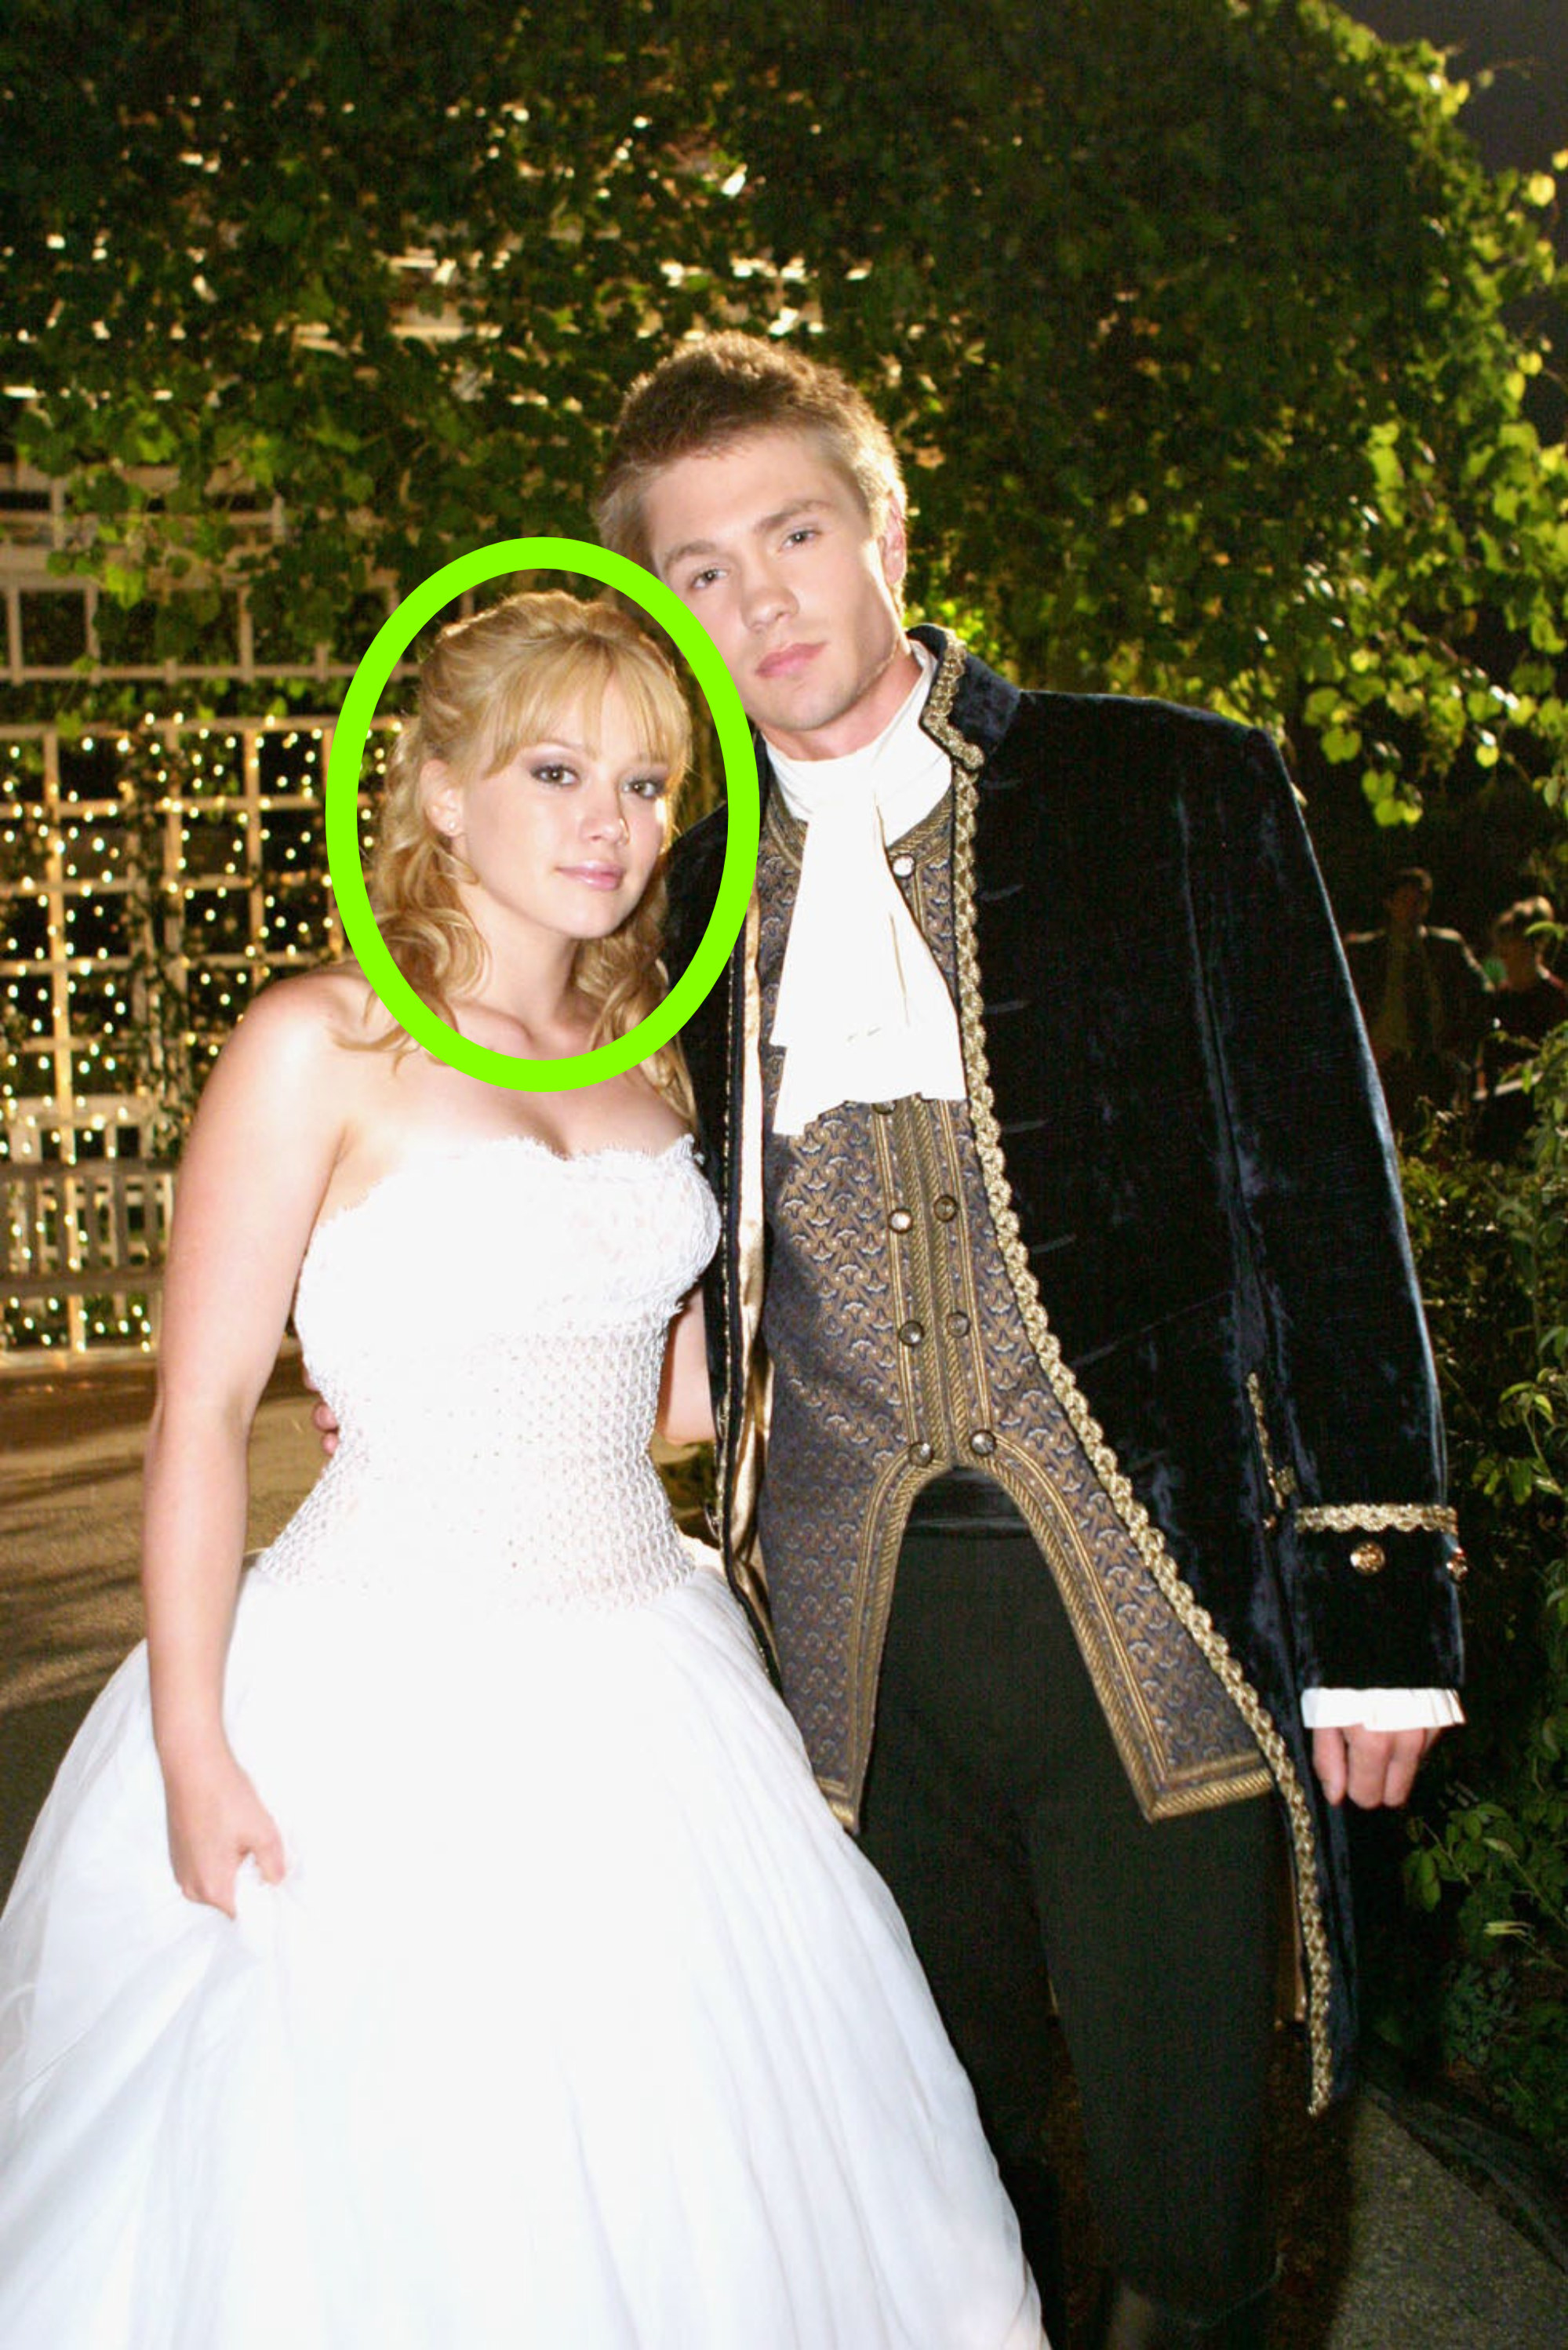 Hilary Duff and Chad Michael Murray in a promo picture for A Cinderella Story in their ball outfits